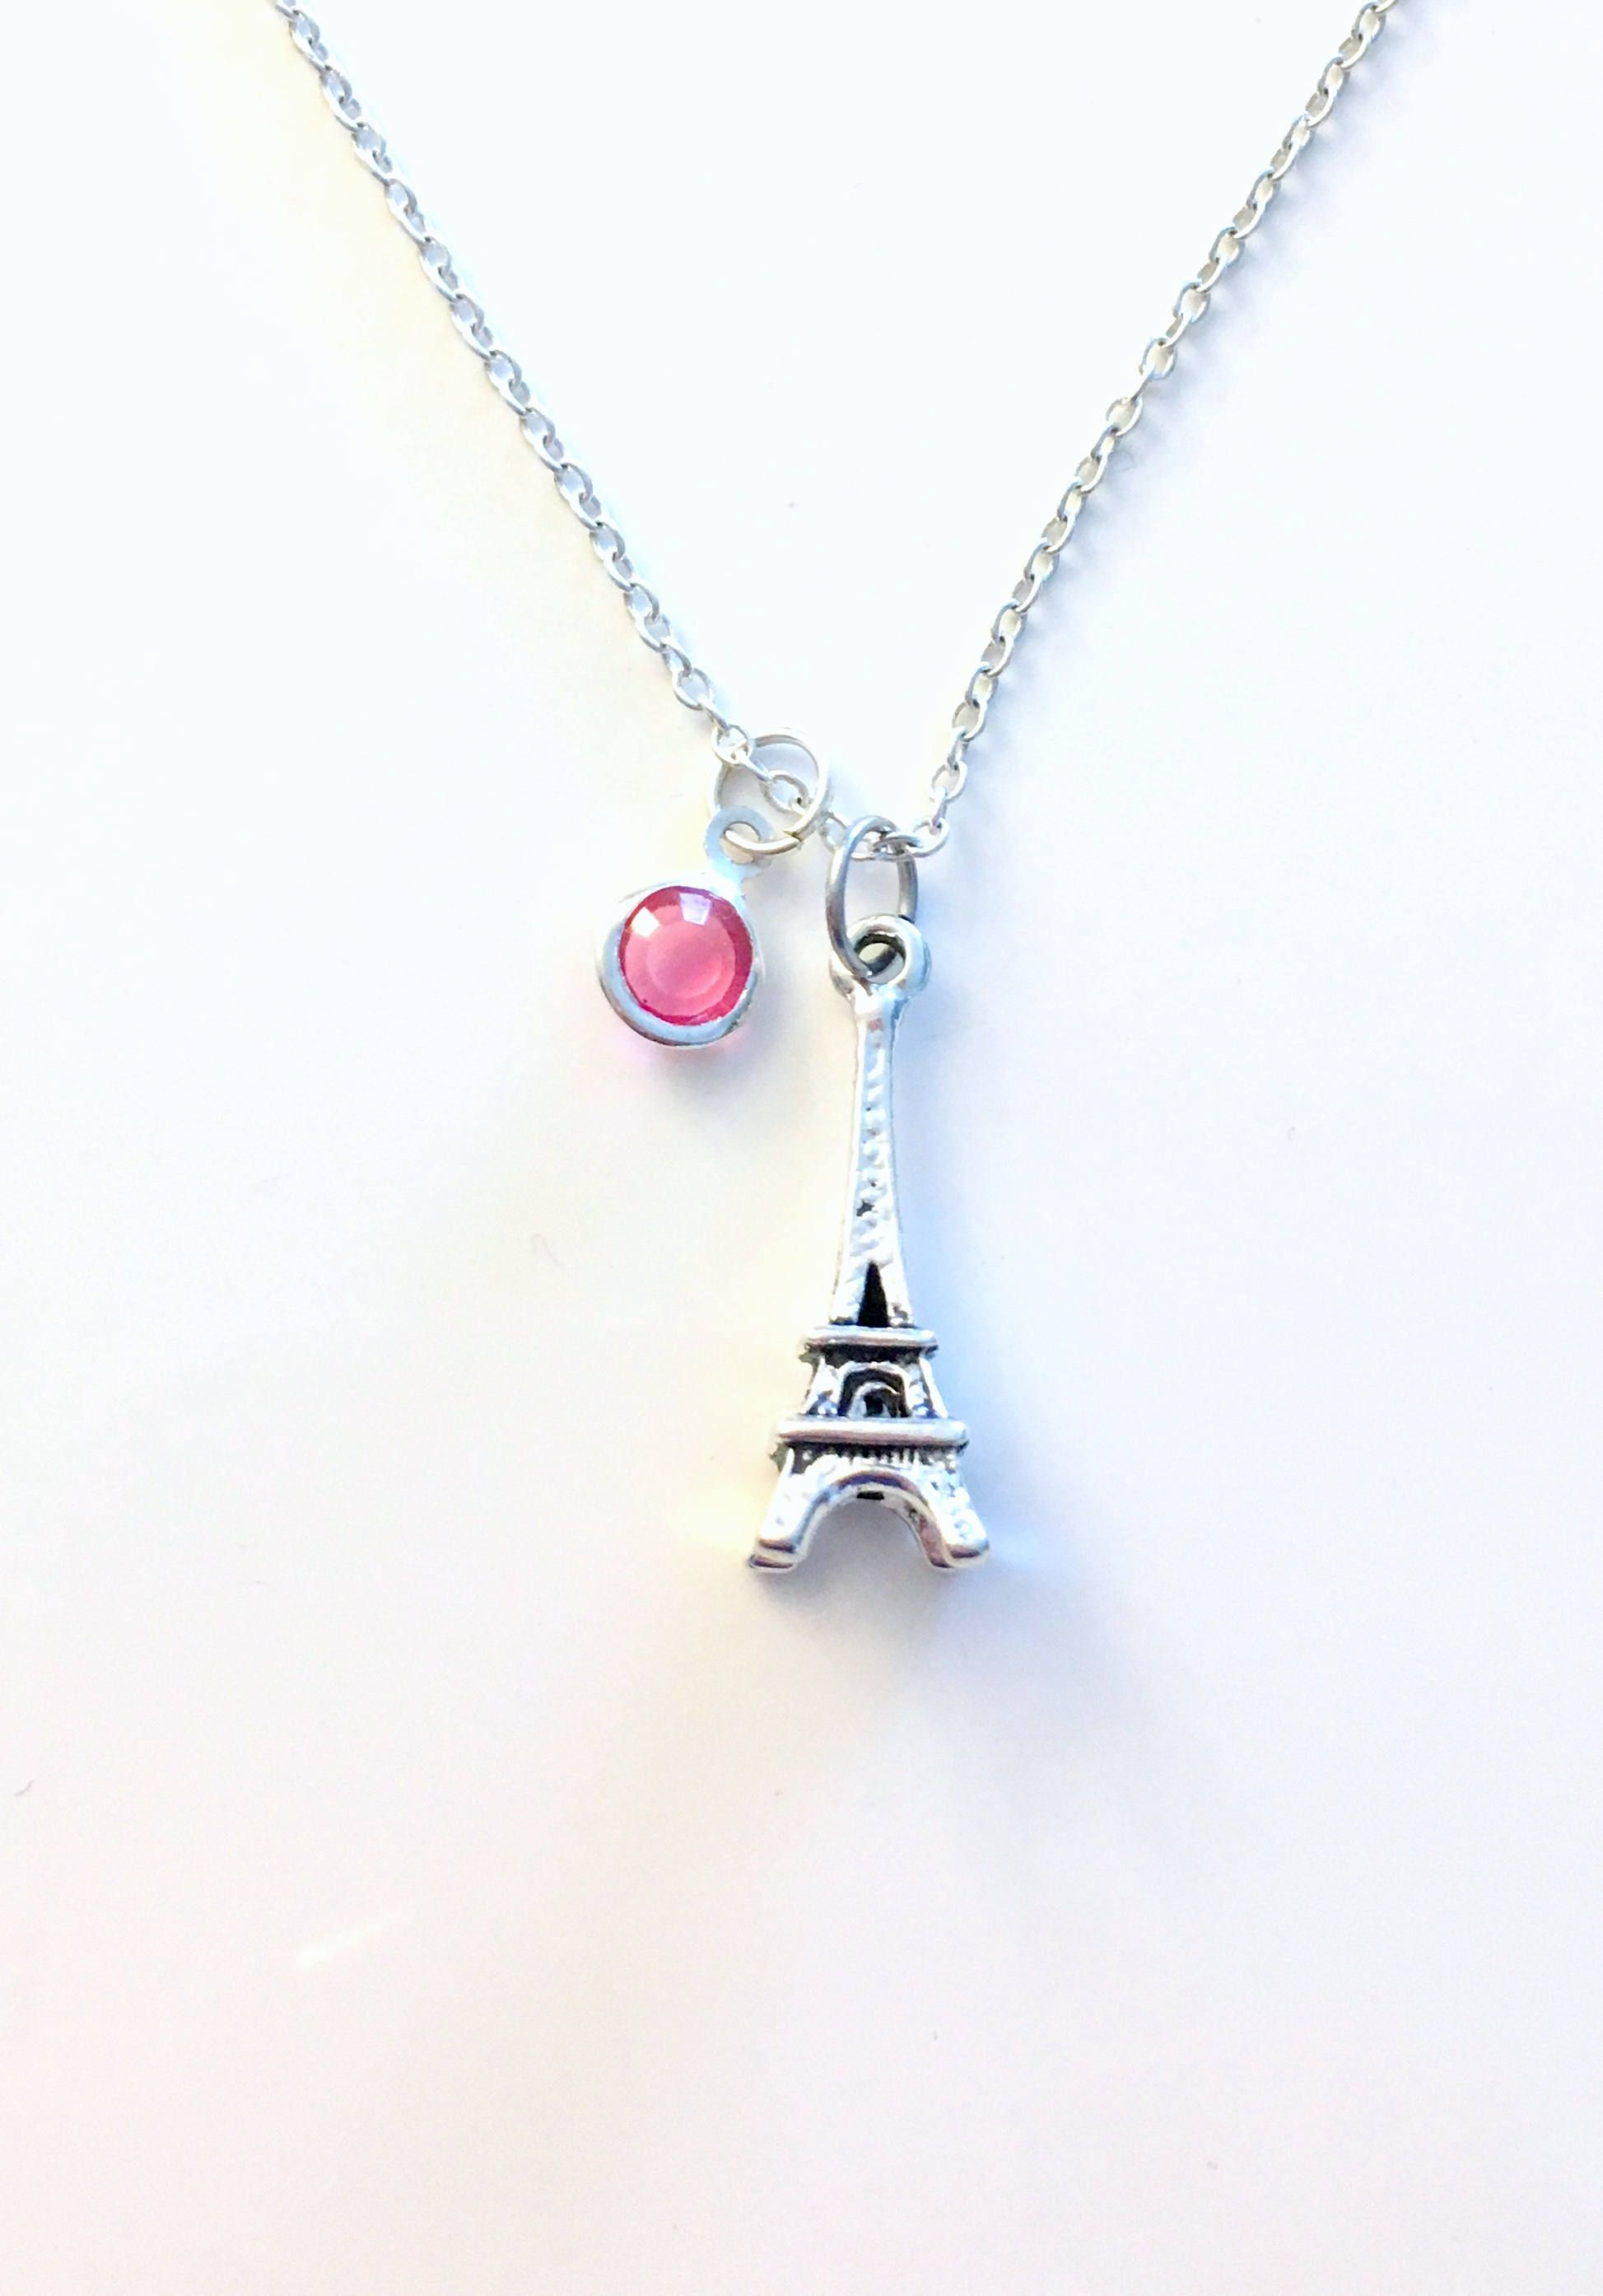 Birthstone Eiffel Tower Necklace Paris Jewelry Personalized Traveler Gift France Souvenir Teenager Girl Birthday Present Girlfriend BFF By